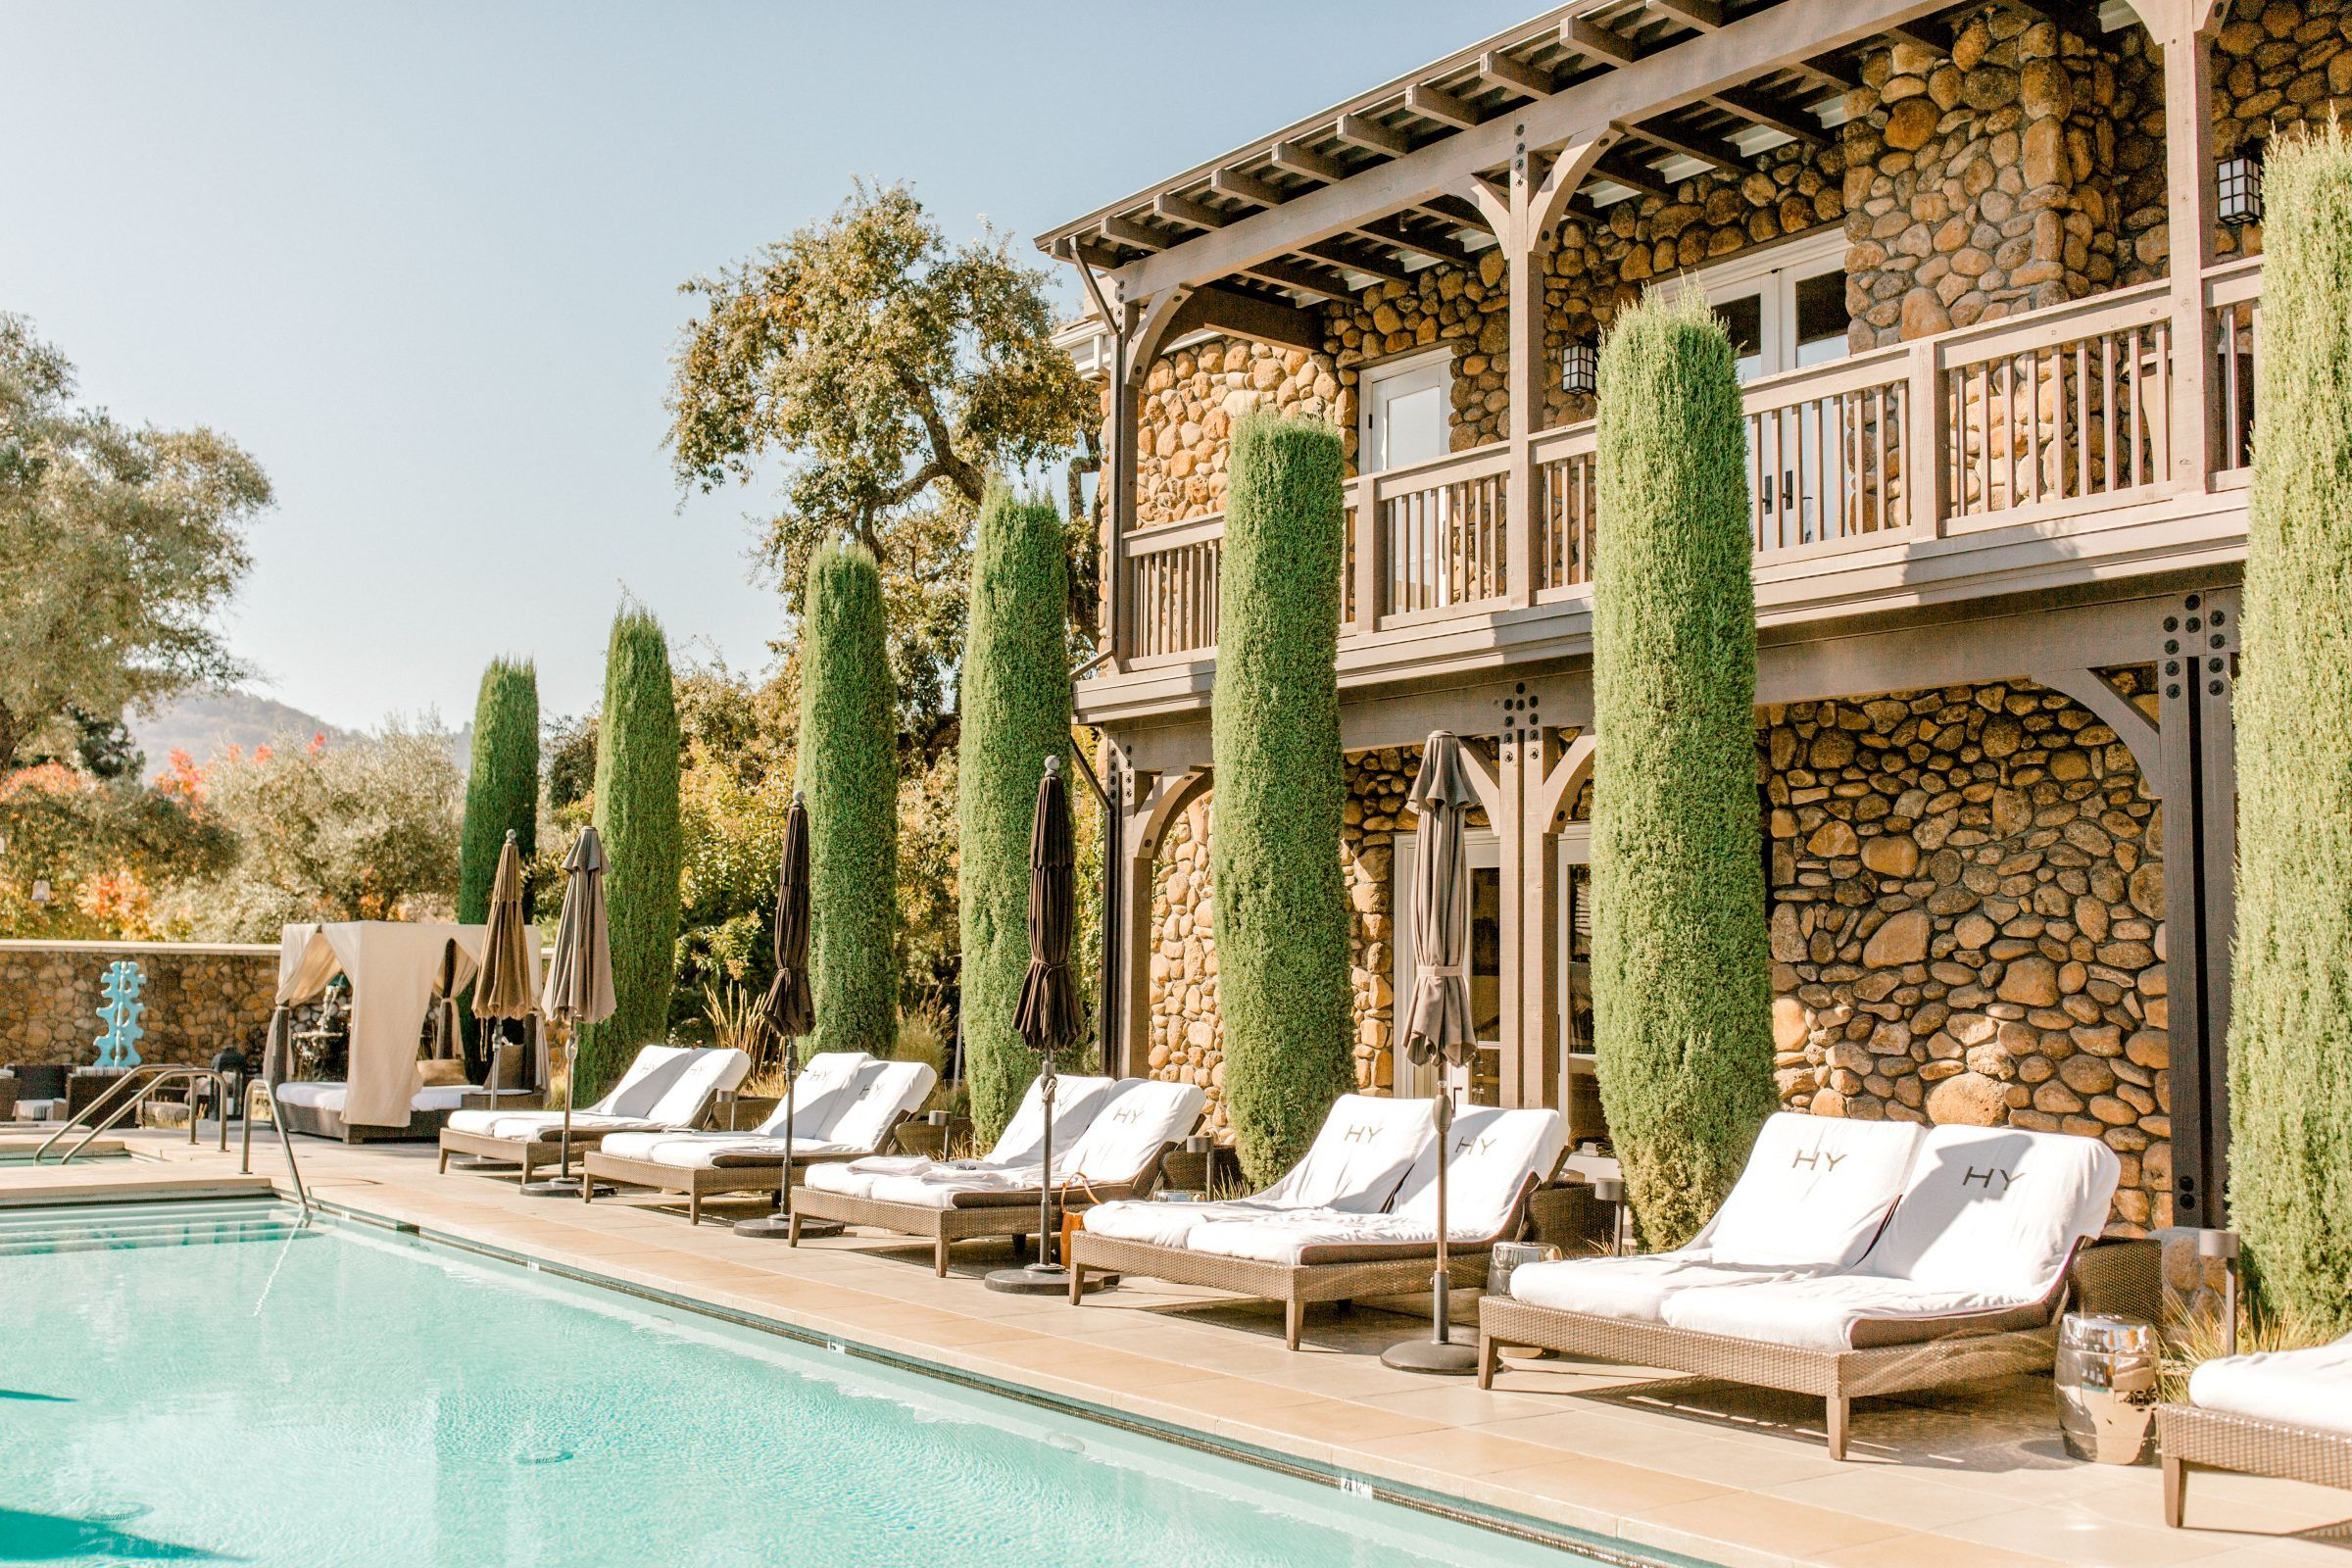 Dreamy Stay At Hotel Yountville Fancy Houses Explore Travel